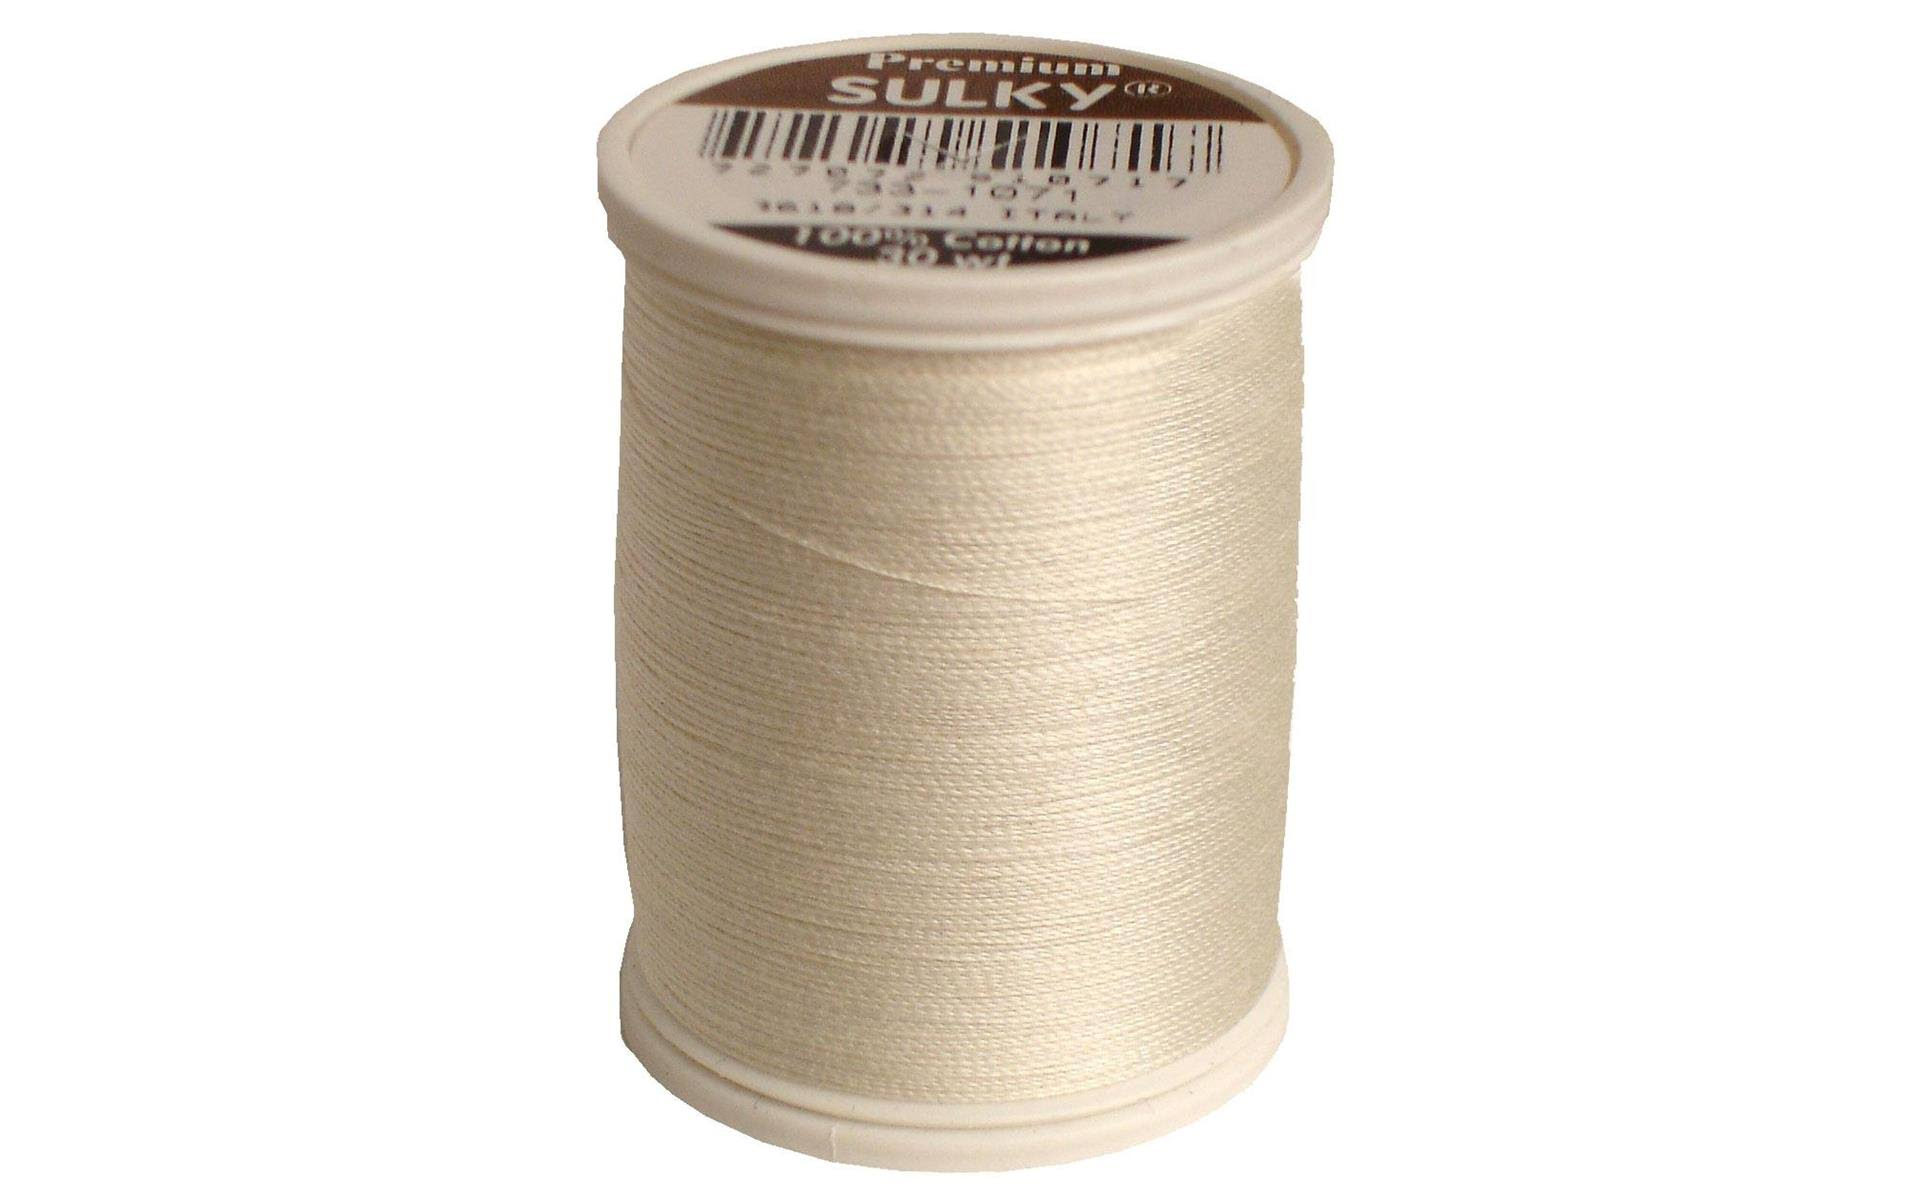 Sulky Cotton Thread Spools - 500 Yards, Off White